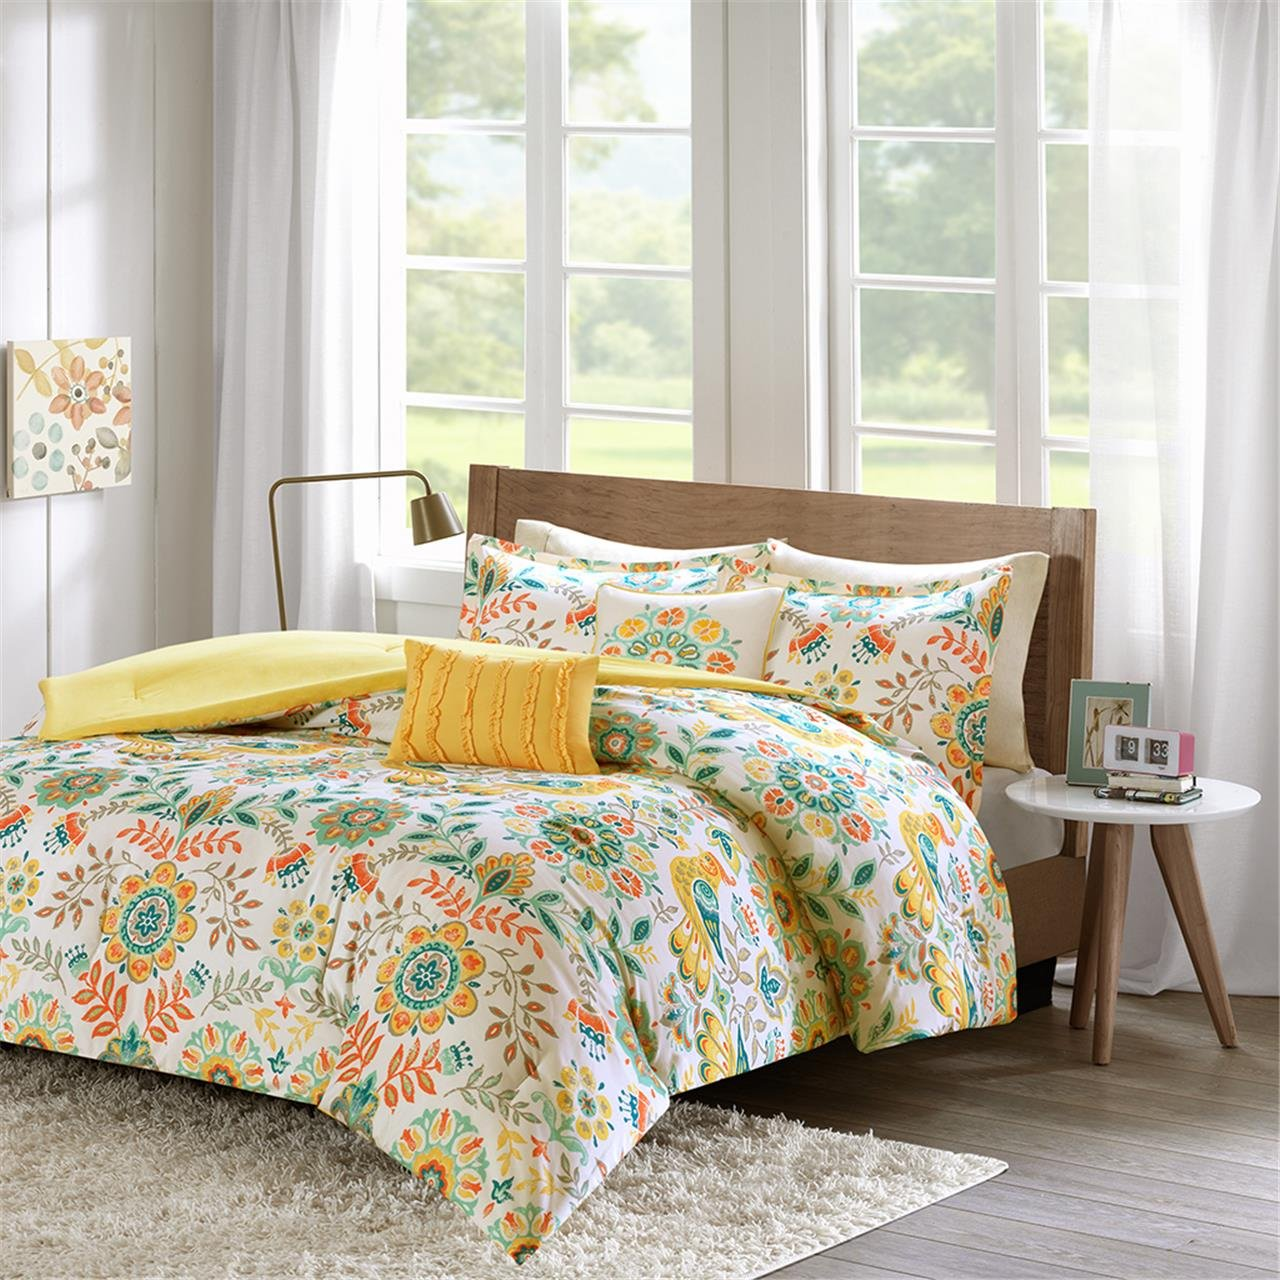 Intelligent Design Nina Comforter Set Twin/Twin XL Size - Orange, Medallion – 4 Piece Bed Sets – Ultra Soft Microfiber Teen Bedding for Girls Bedroom E&E Co. Ltd DBA JLA Home ID10-727